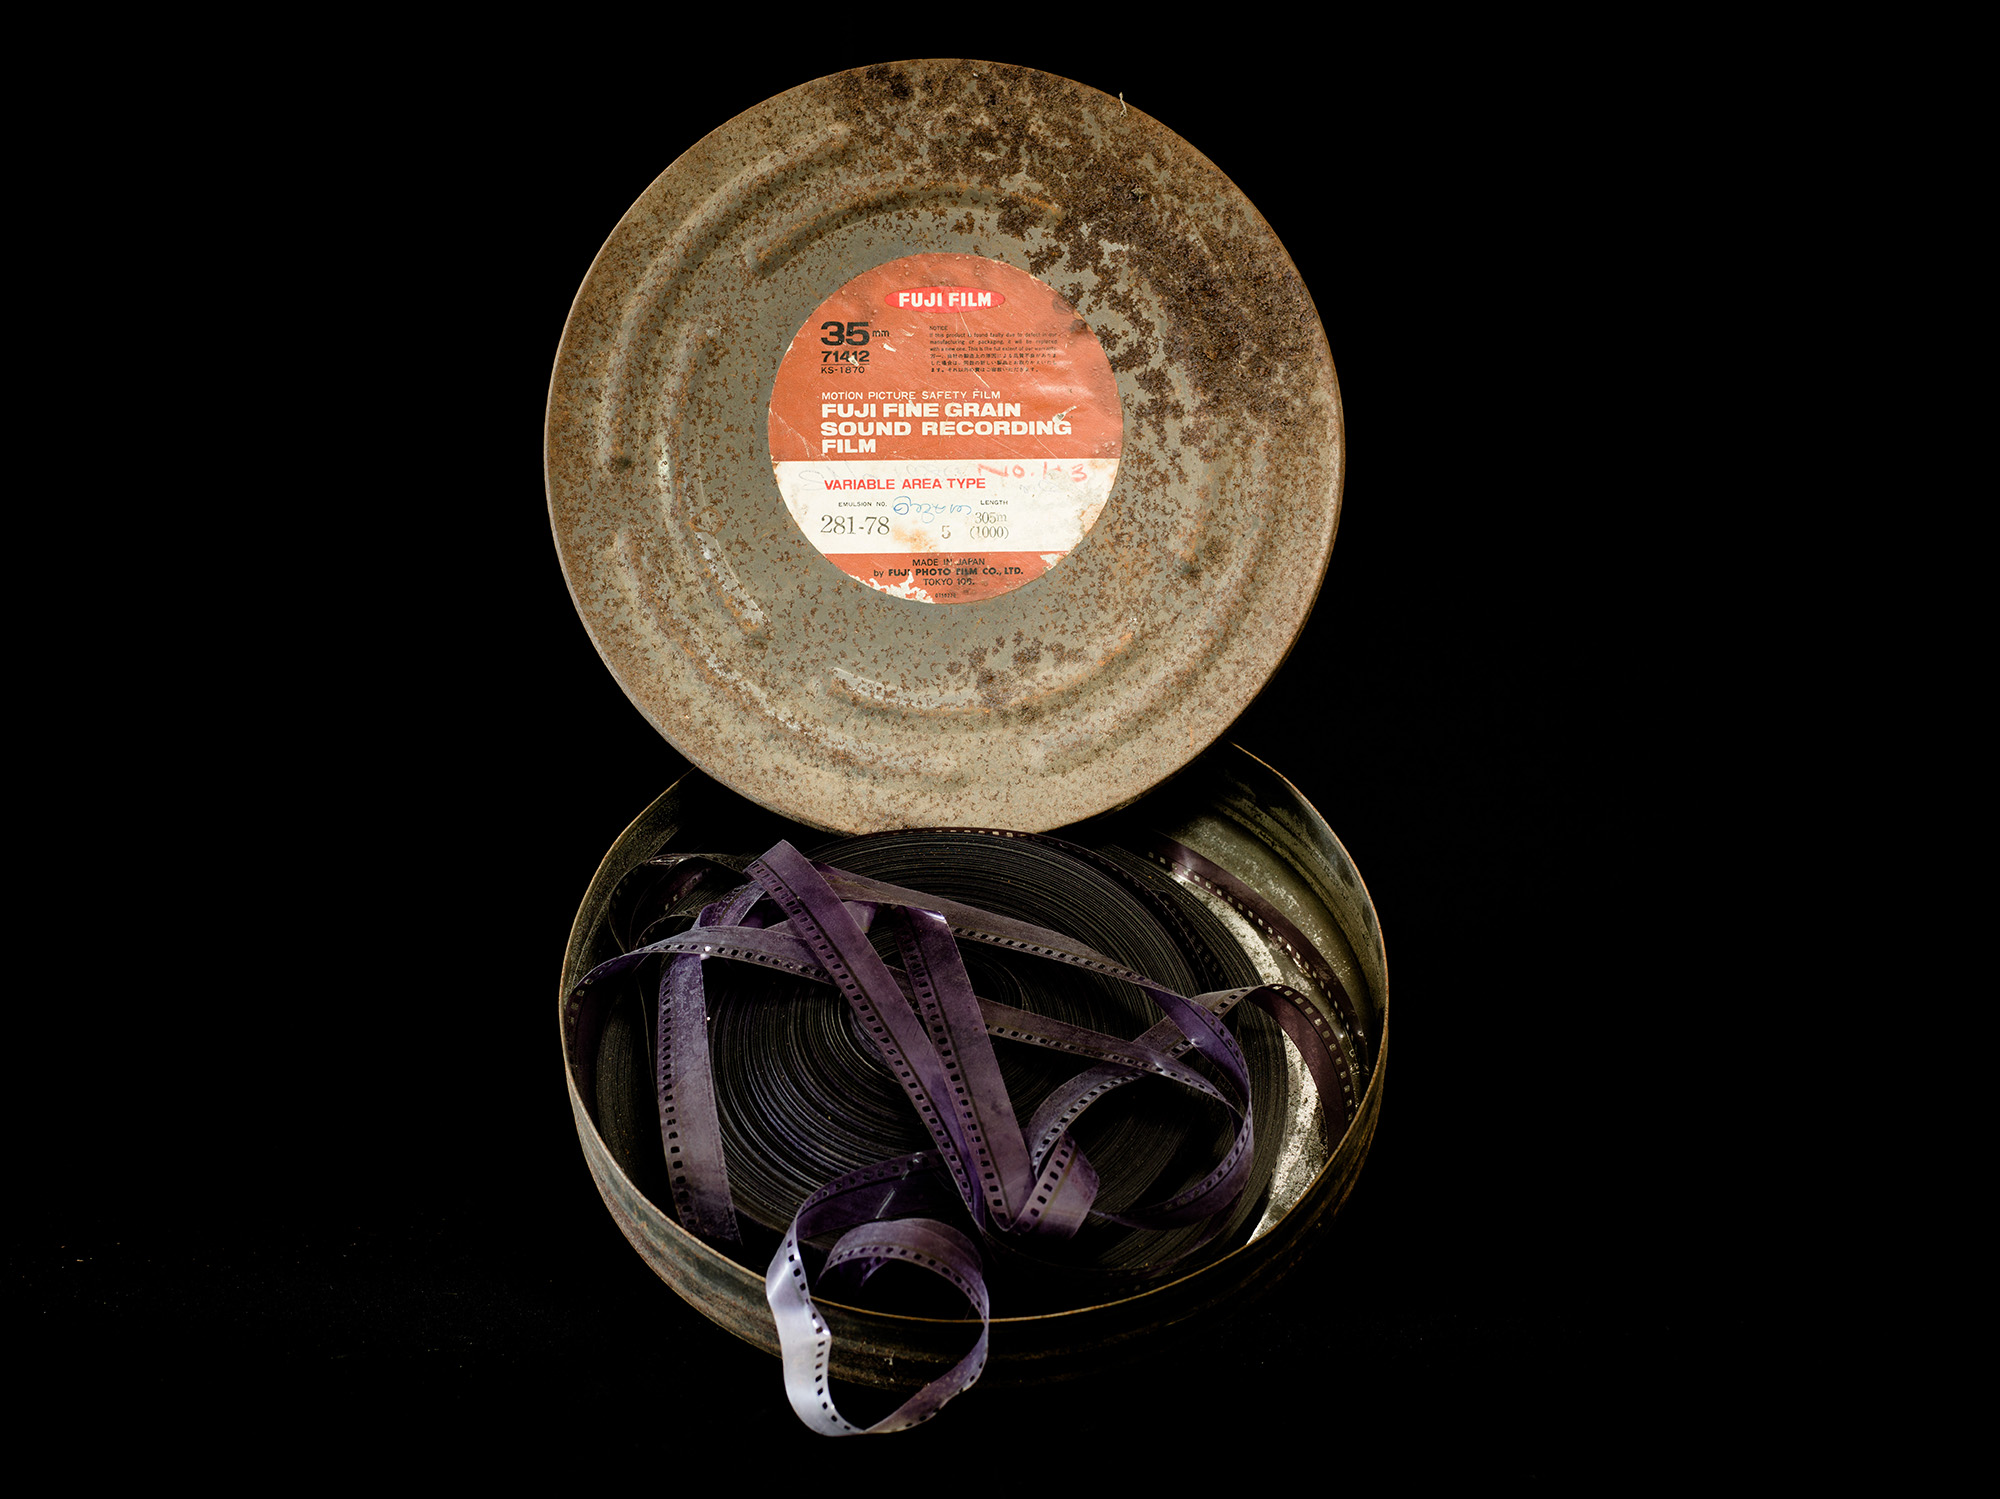 A box of sound recording film from the Shwe Bamar film company. Shwe Bamar was one of the most prominent film companies to operate during the golden age of Burmese cinema.